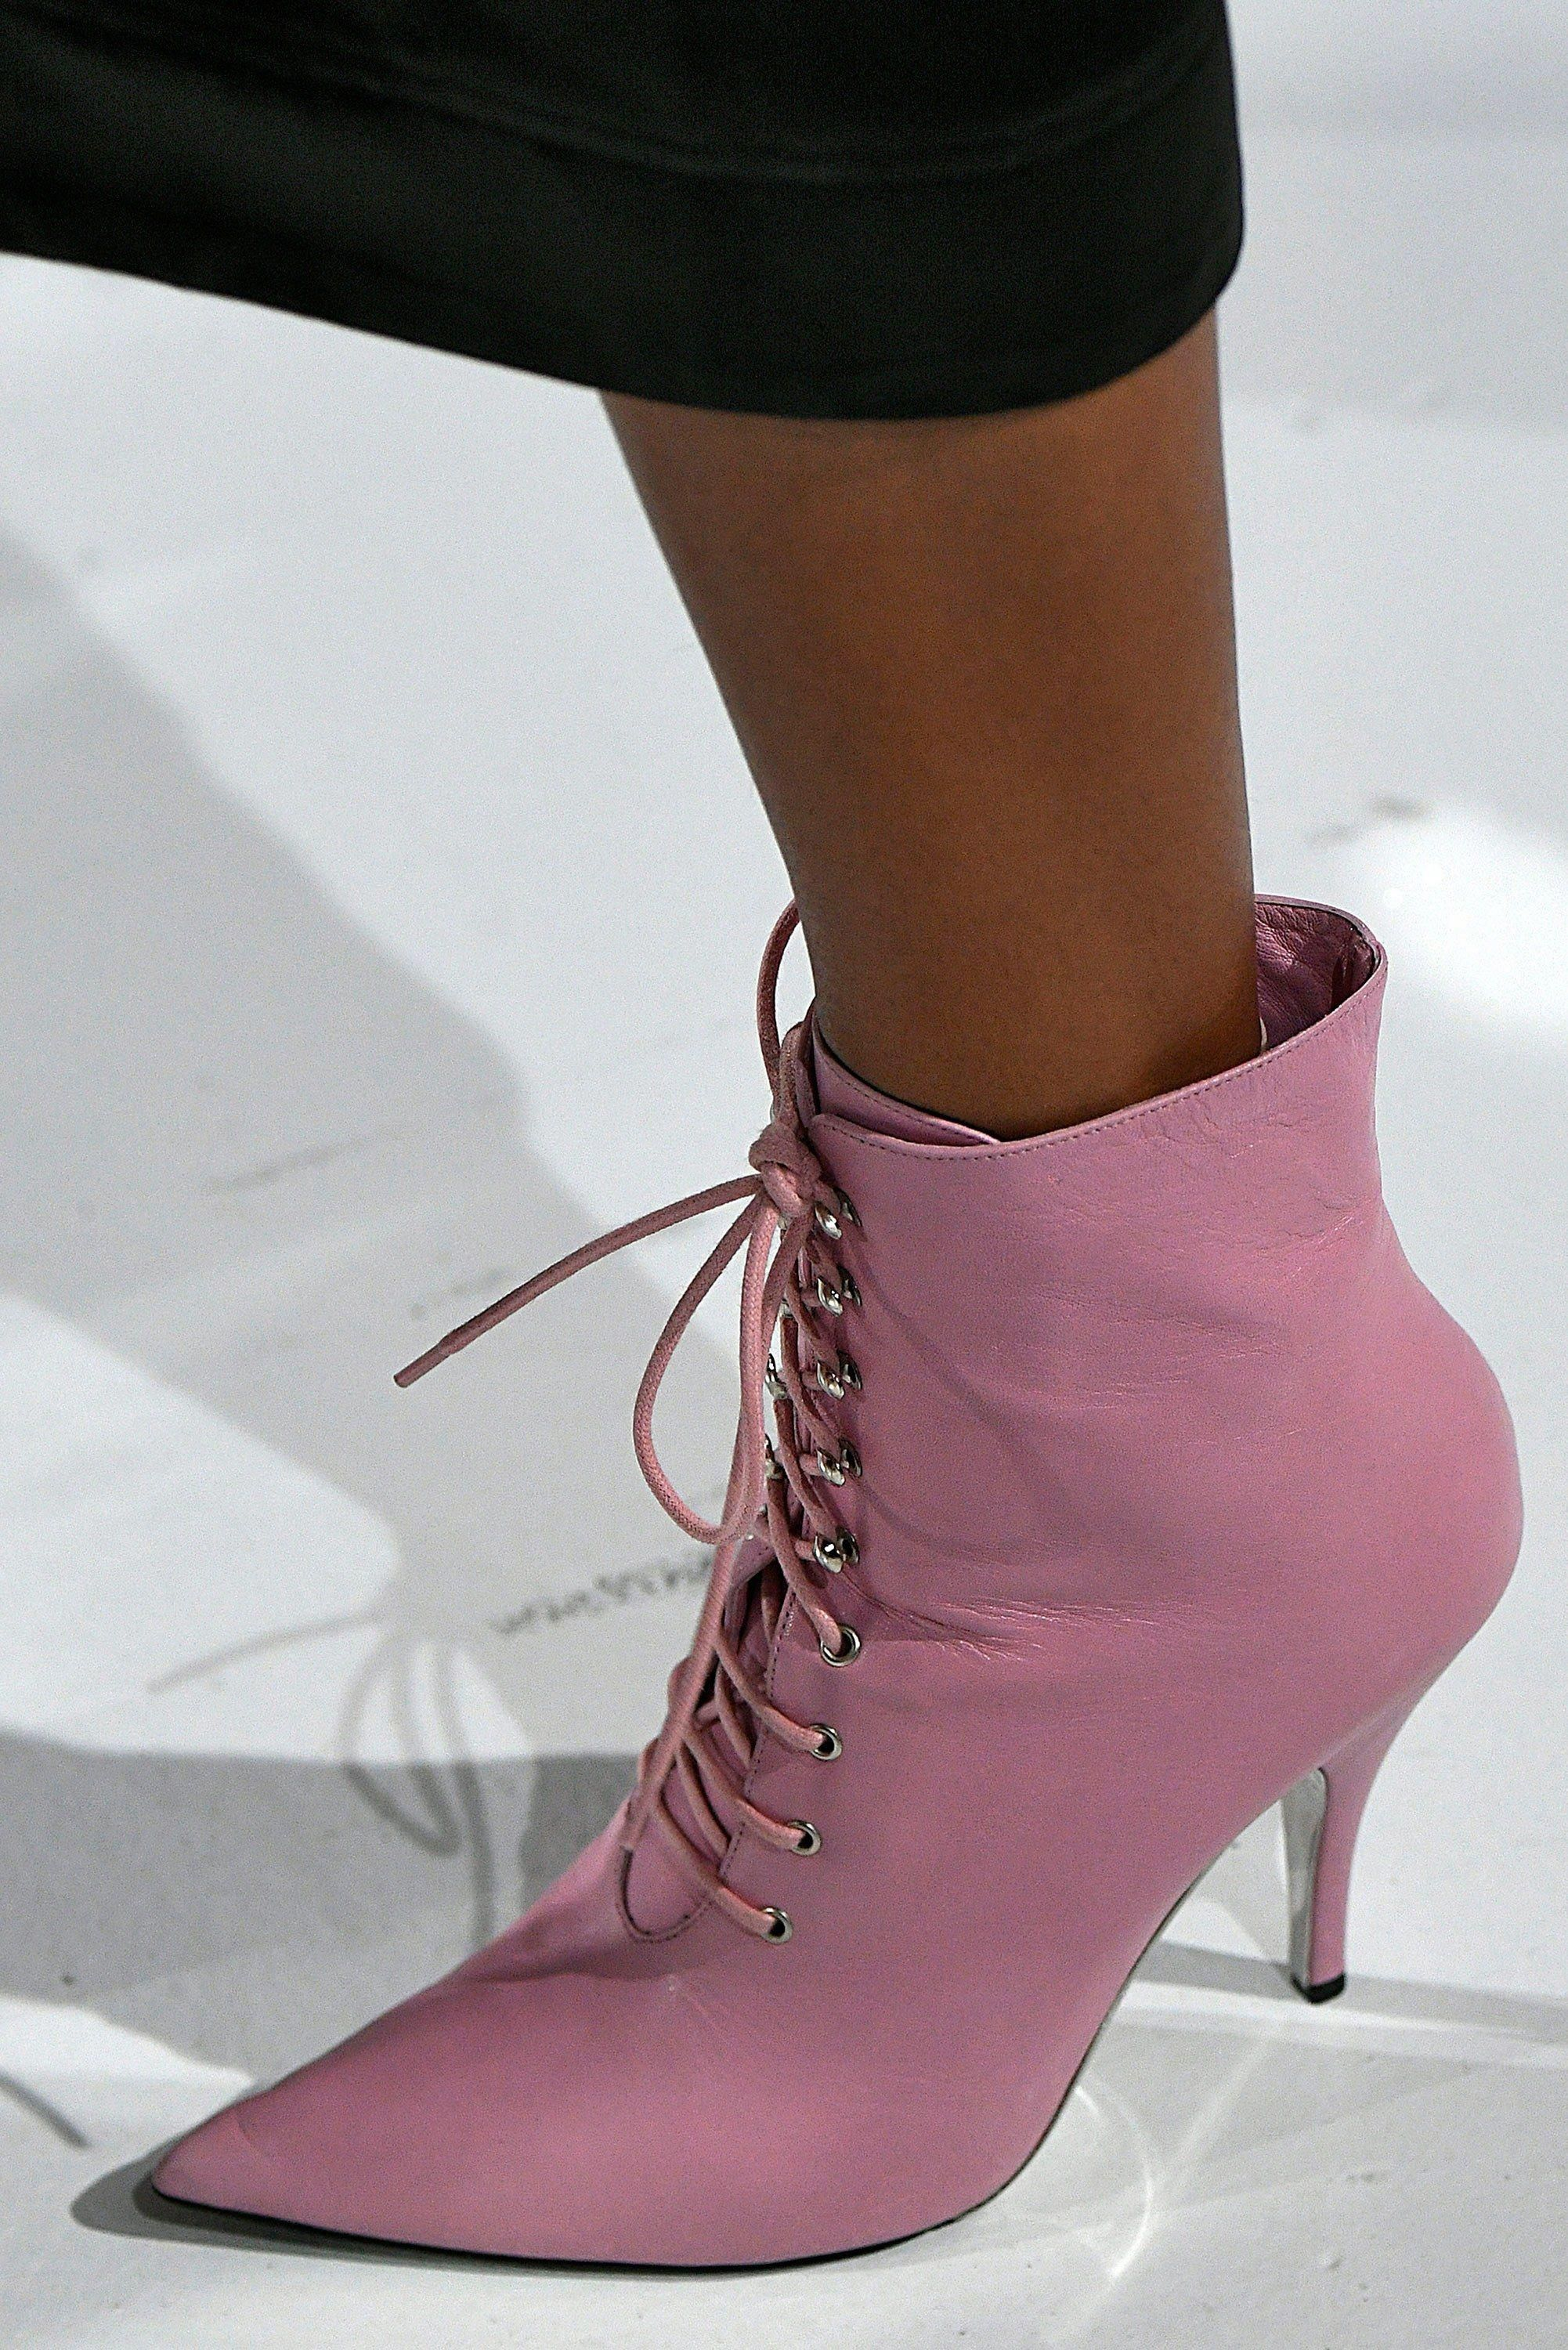 11 Top Accessory Trends Of Spring 2018 Topmakeupaccessories Trending Shoes Spring Shoe Trend Shoe Inspiration